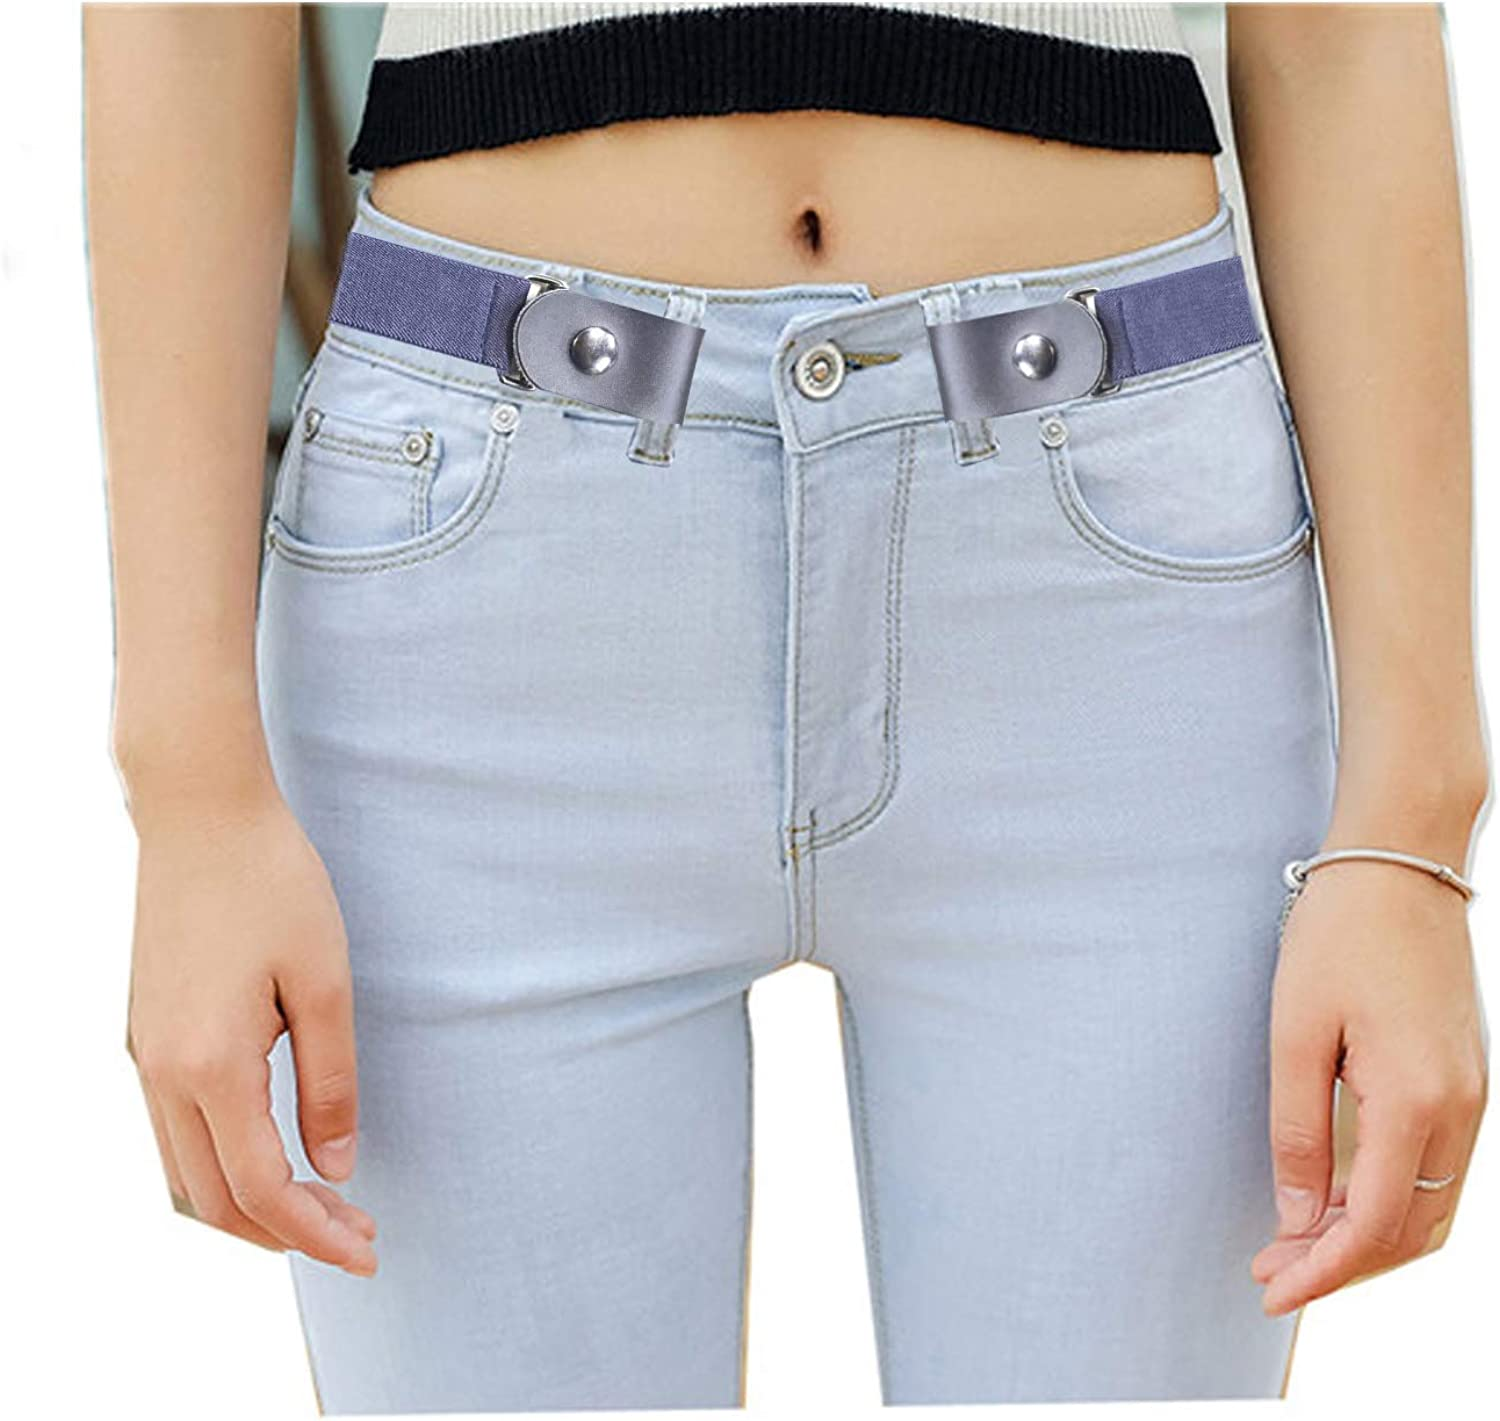 No Buckle and Hassle Elastic Invisible Belts for Jeans Buckle-less No Bulge Belt for Women